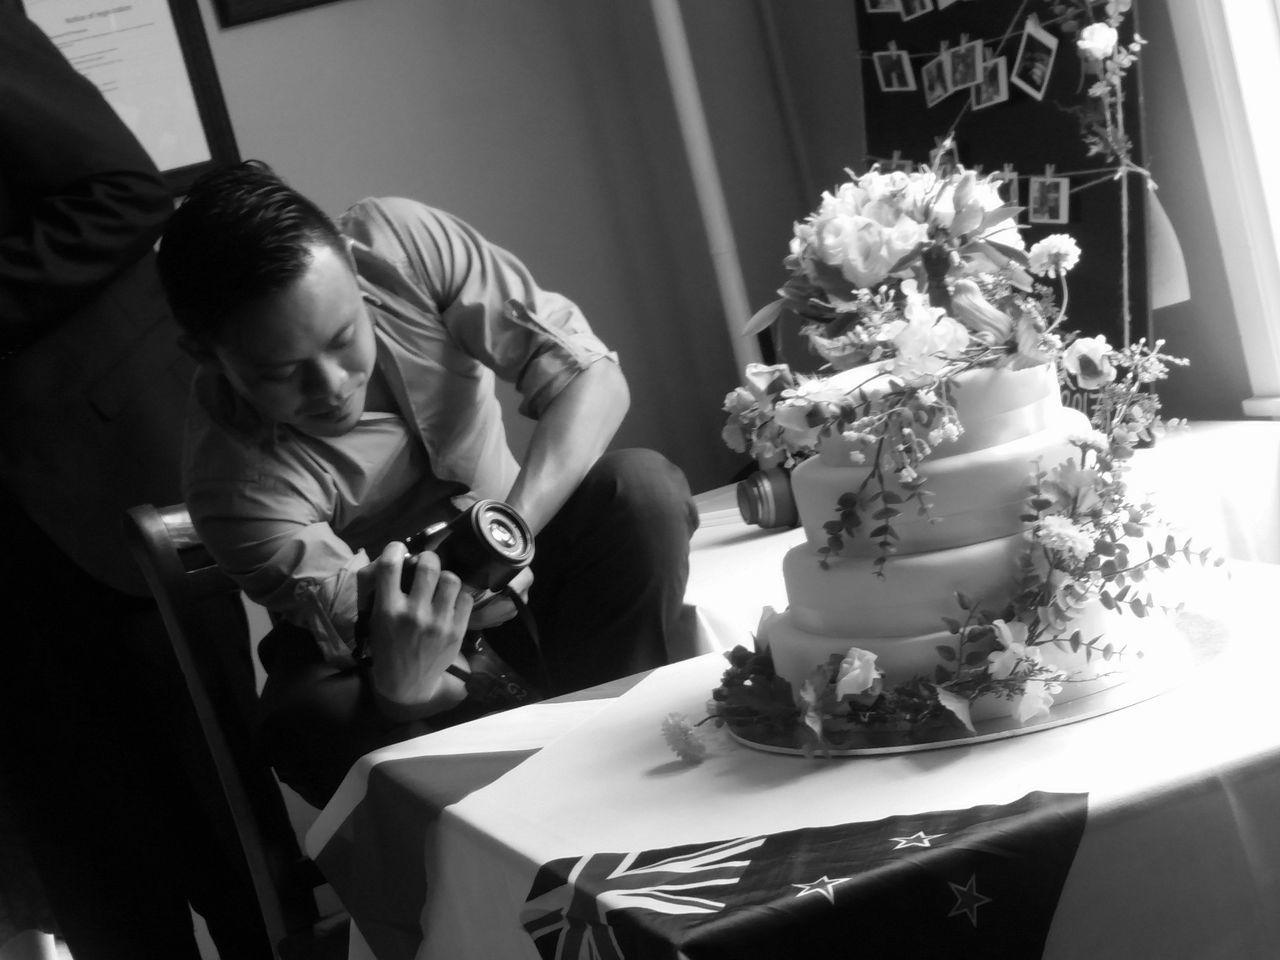 Wedding Wedding Photography Wedding Cake Blackandwhite Blackandwhite Photography Lightandshadow Indoors  Real People Photoofphotographer